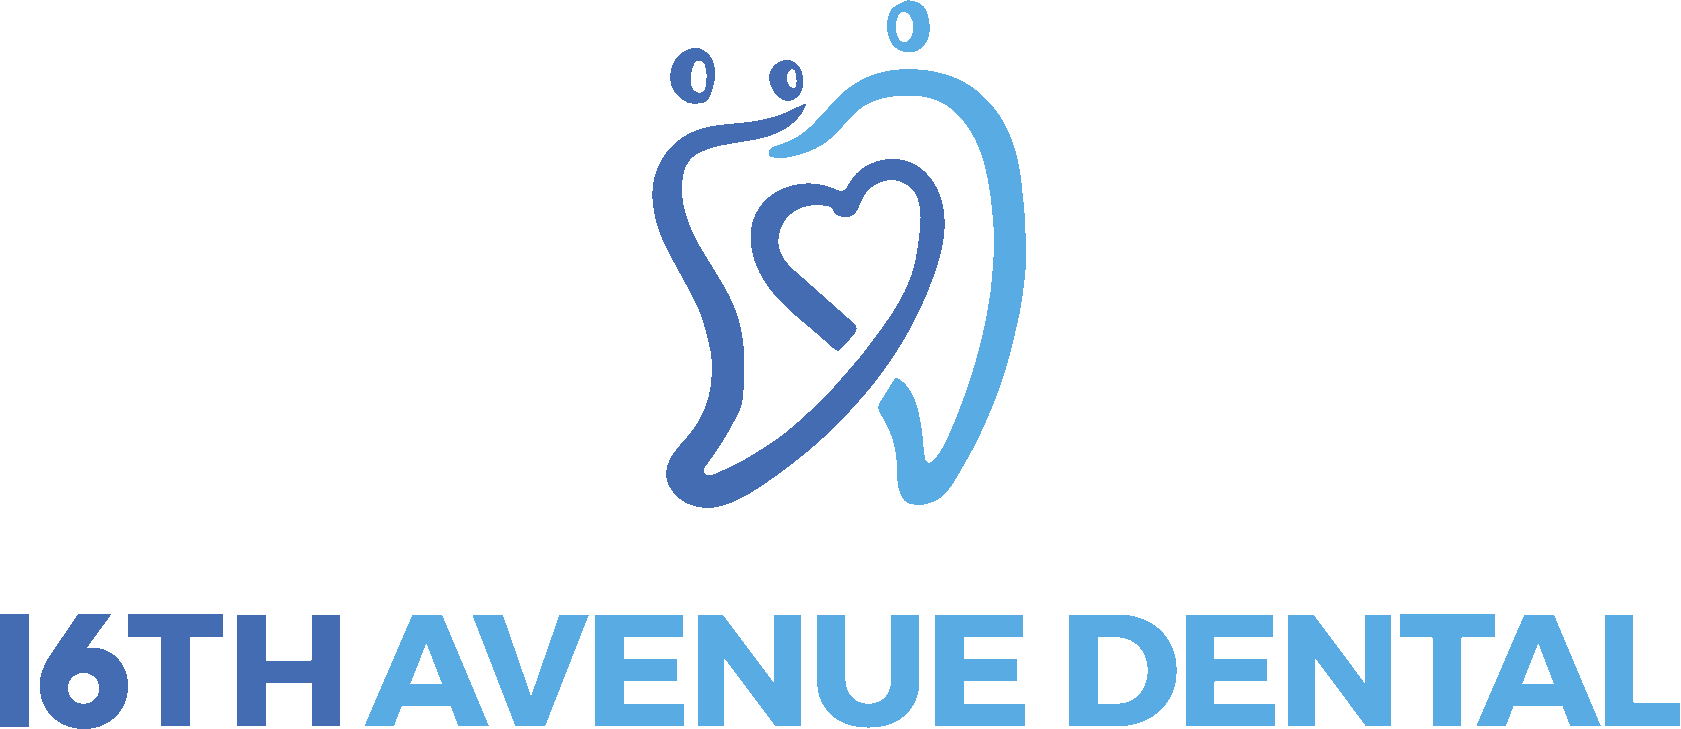 16th Avenue Dental Logo